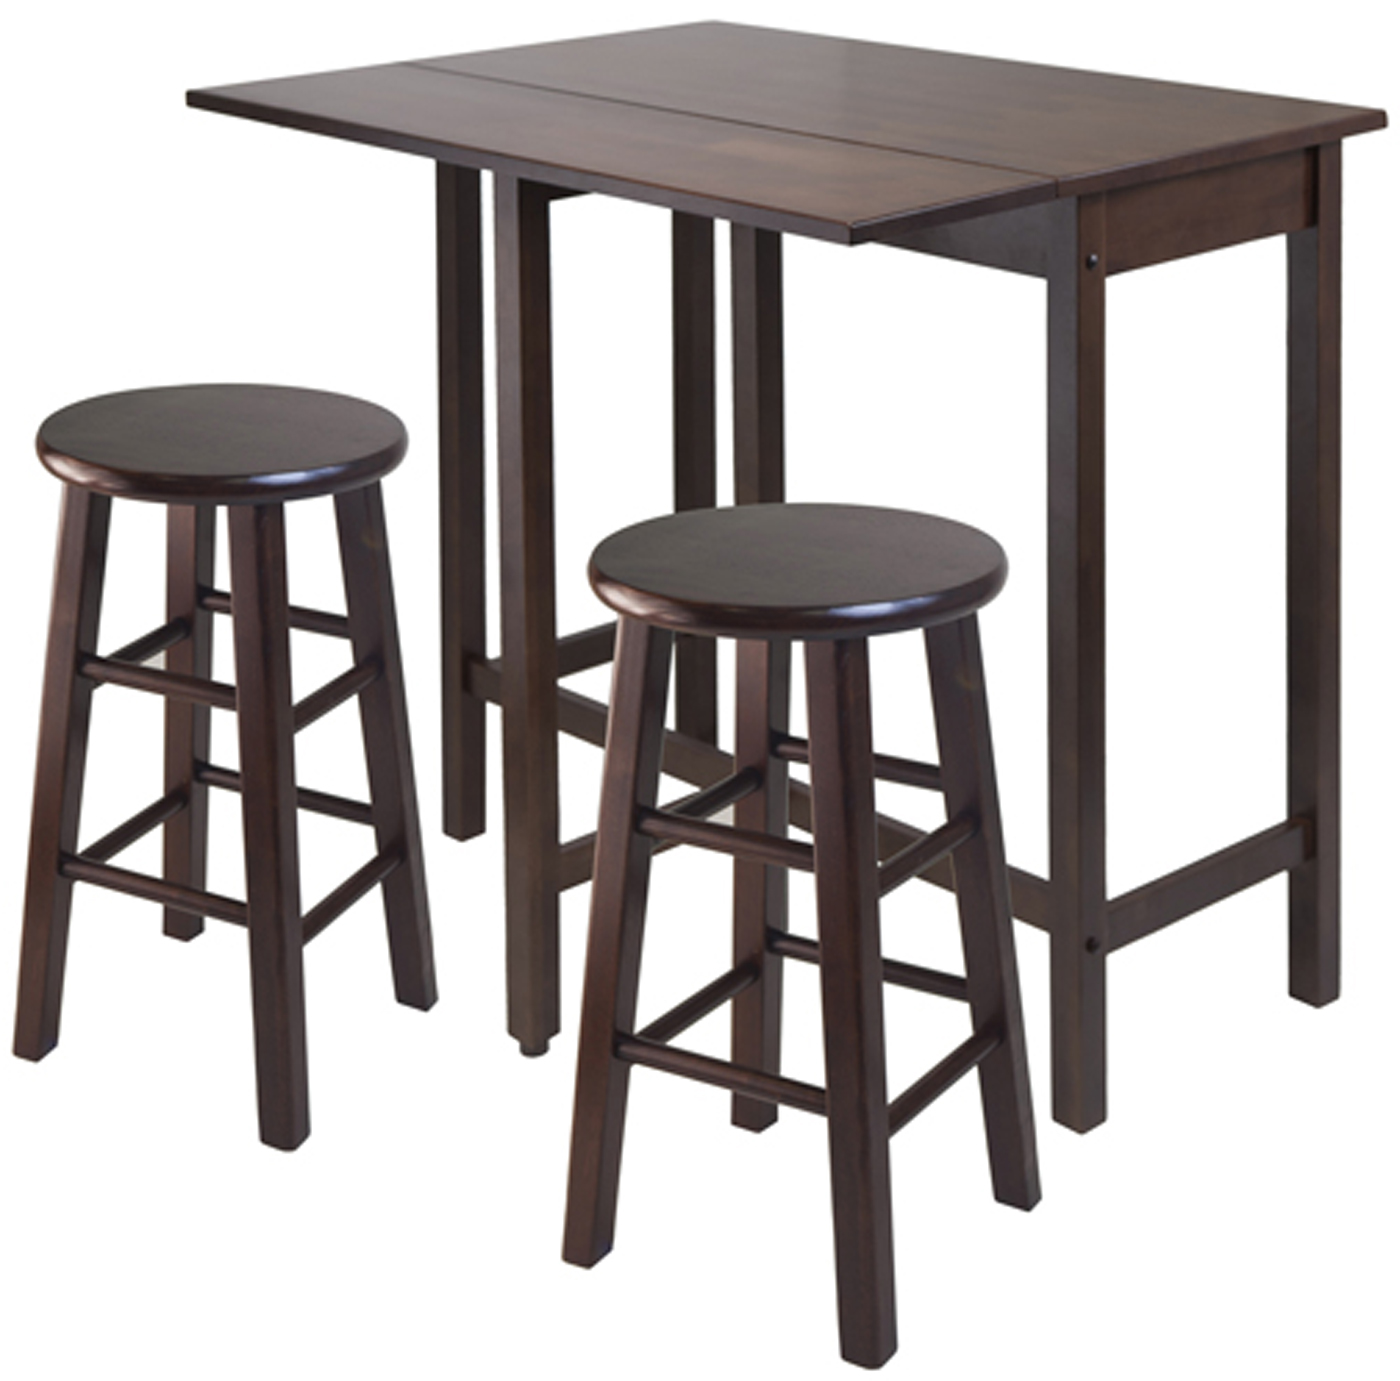 High Table With Stools: High Table With Swivel Stools In Bar Table Sets